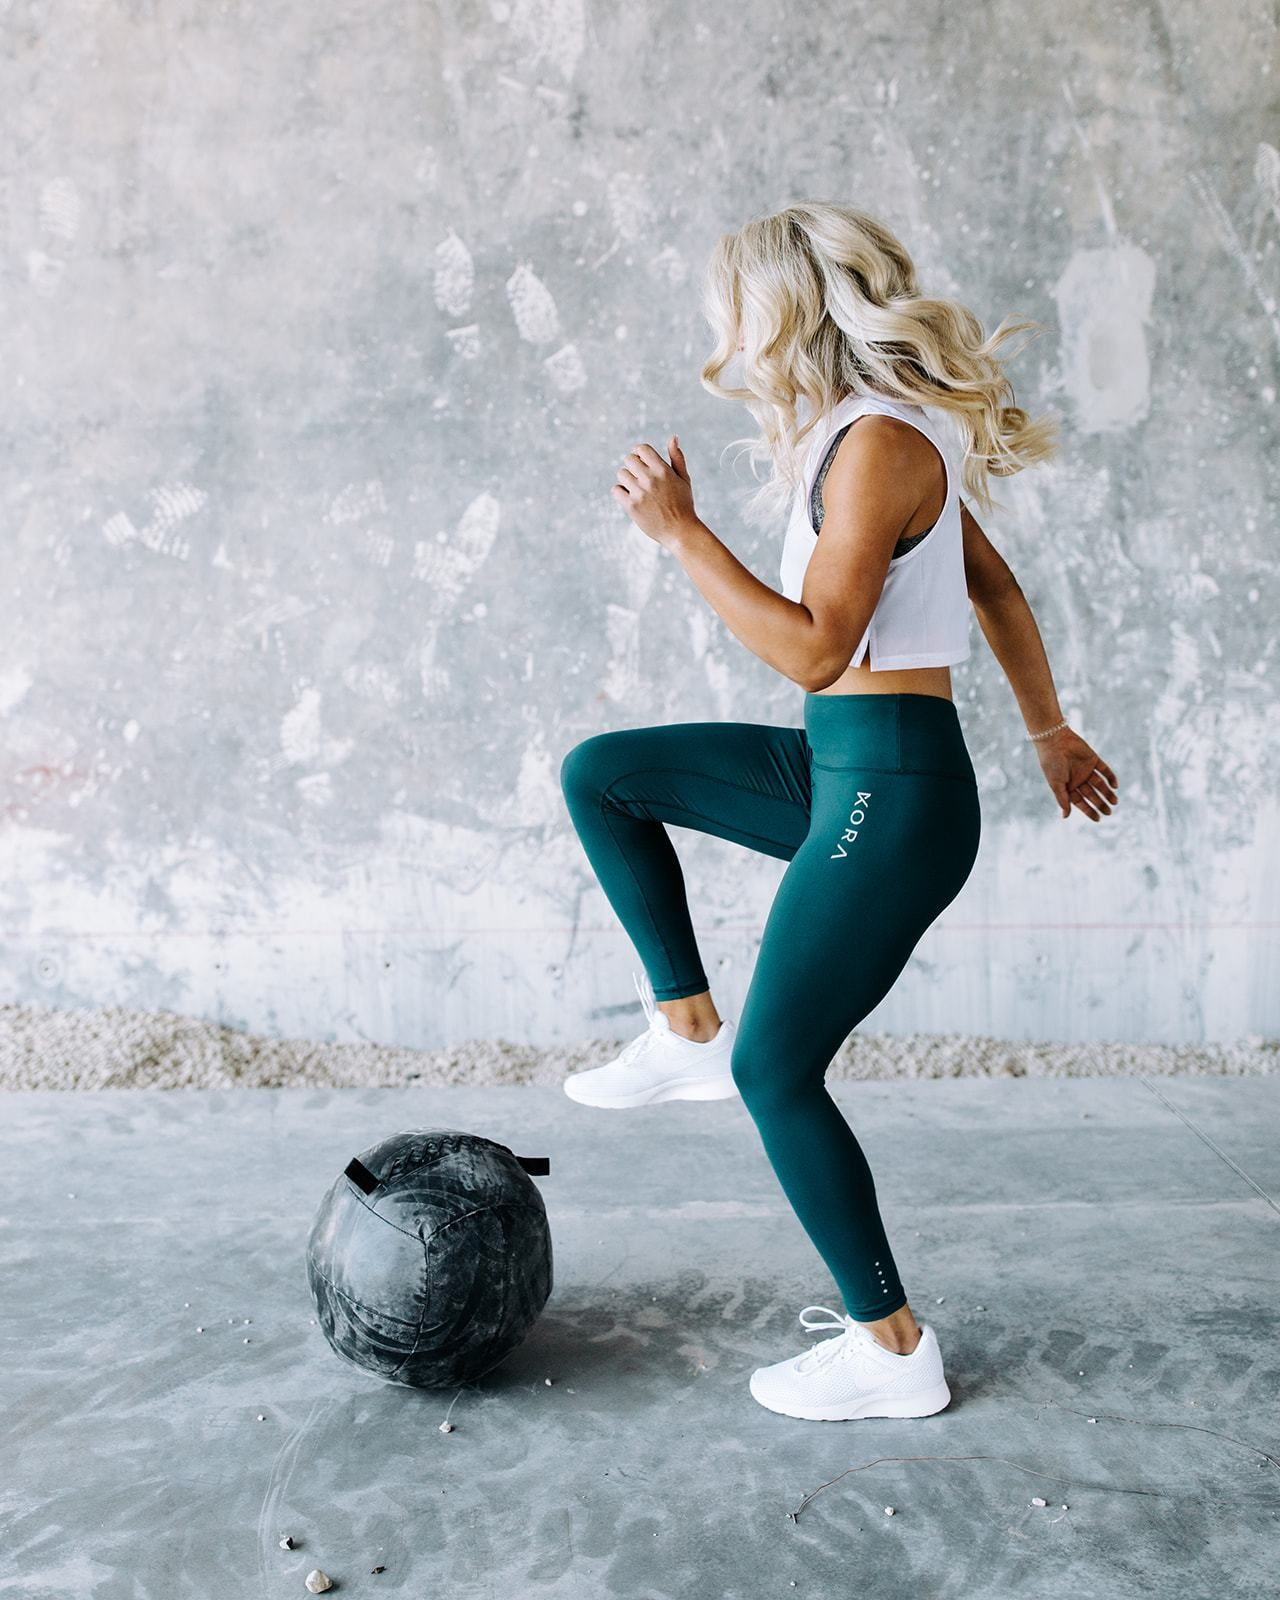 Athletic Gym Performance Apparel That Gives To Charity Every Purchase Kora Fitness Llc Workout Aesthetic Performance Outfit Fitness Fashion